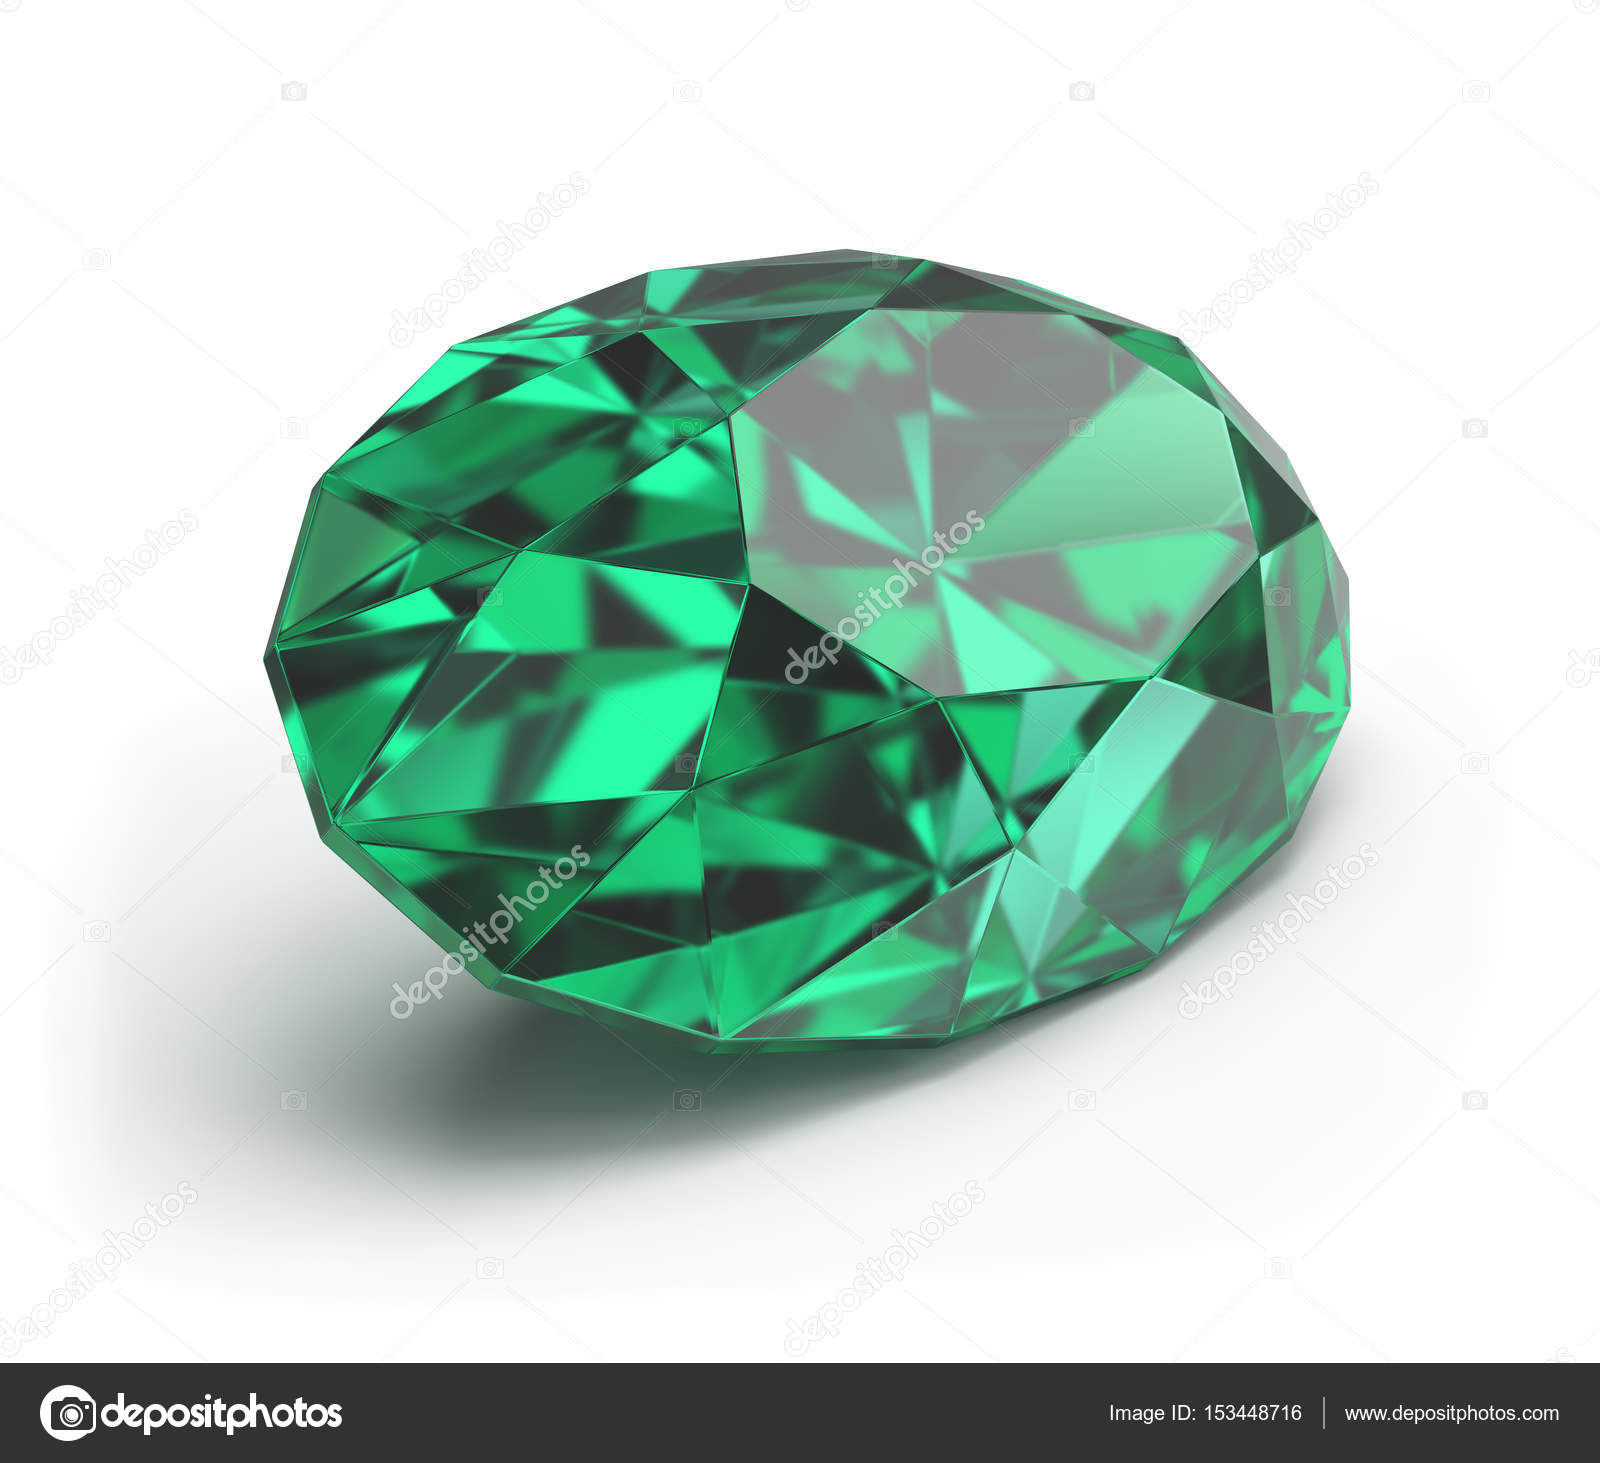 online delhi stone faridabad panna ratti like stones remedy certified id colombian emerald gems astrological precious gemstone